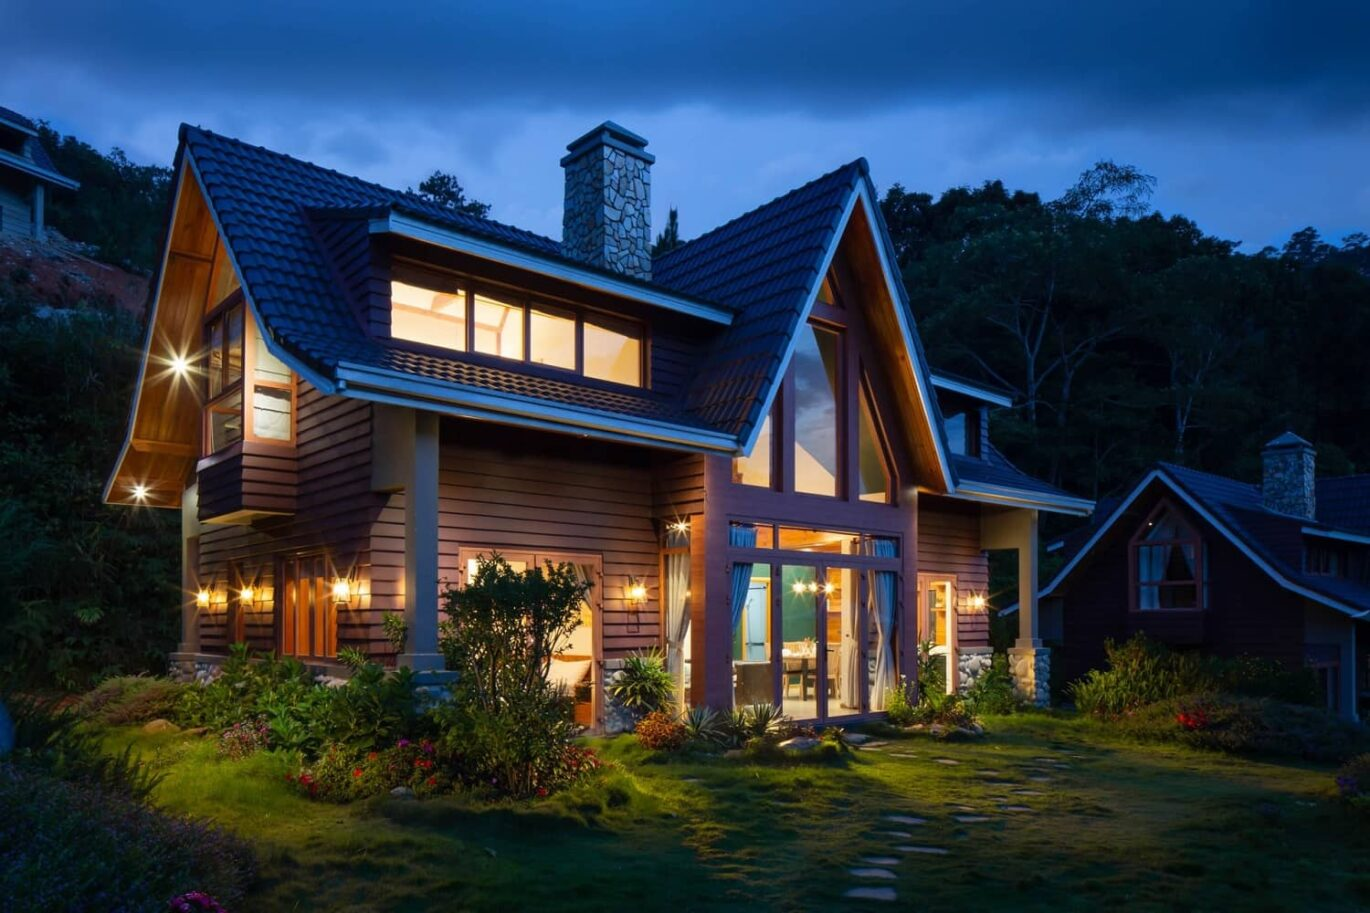 A beautiful house with stunning exterior and lights